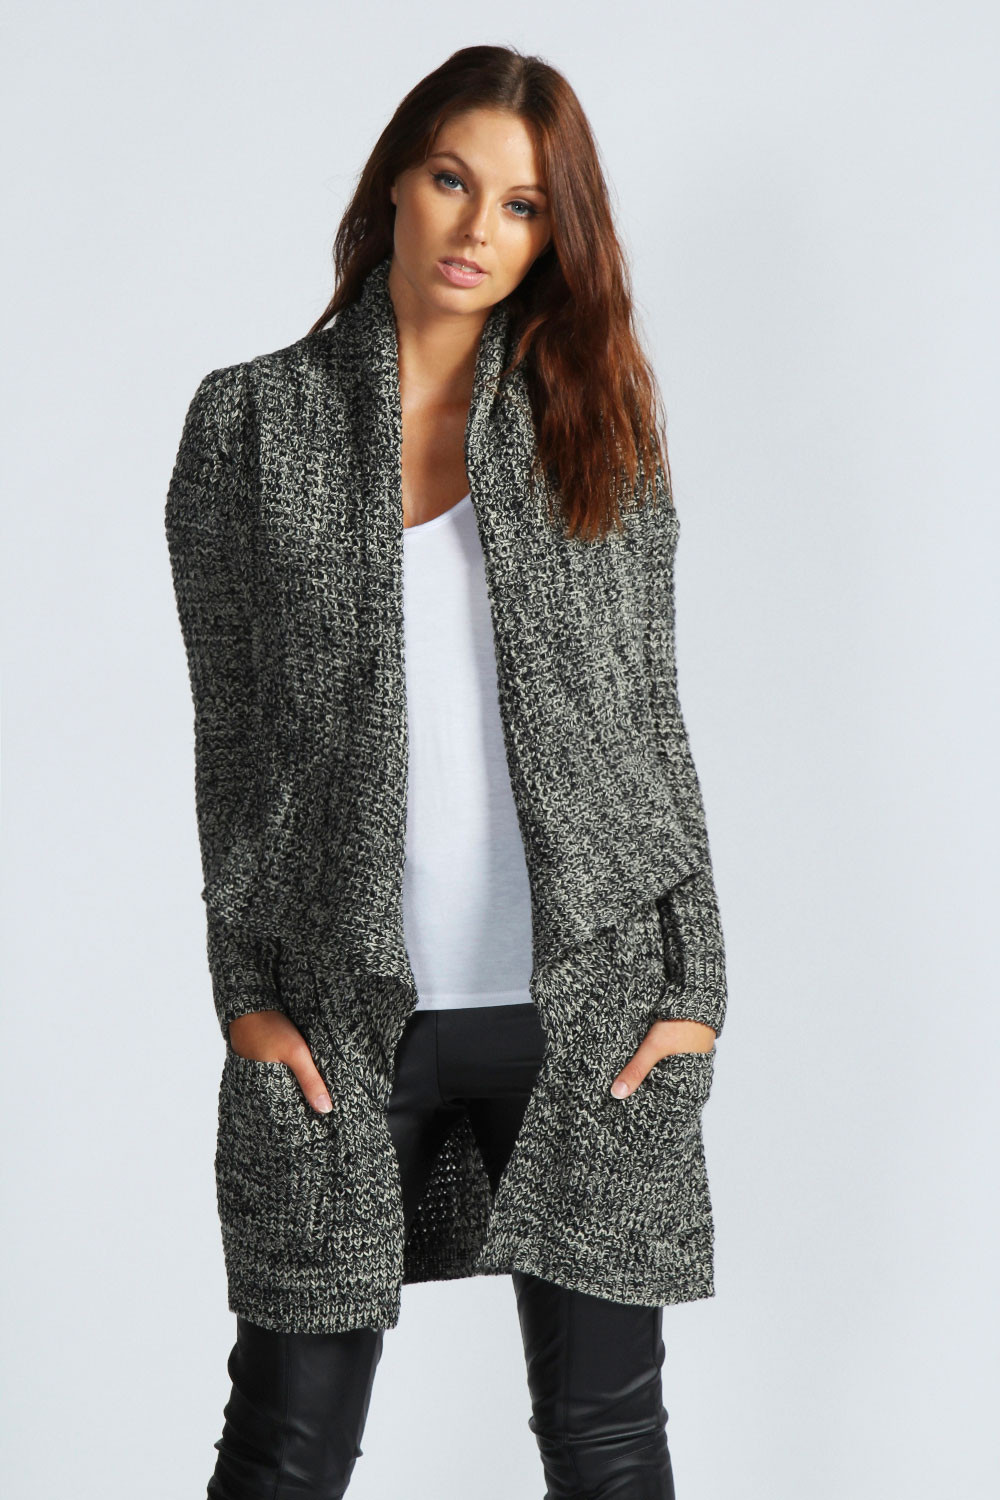 Knit Cardigan New Boohoo Aliah Chunky Marl Knit Oversized Cardigan Of Delightful 41 Ideas Knit Cardigan